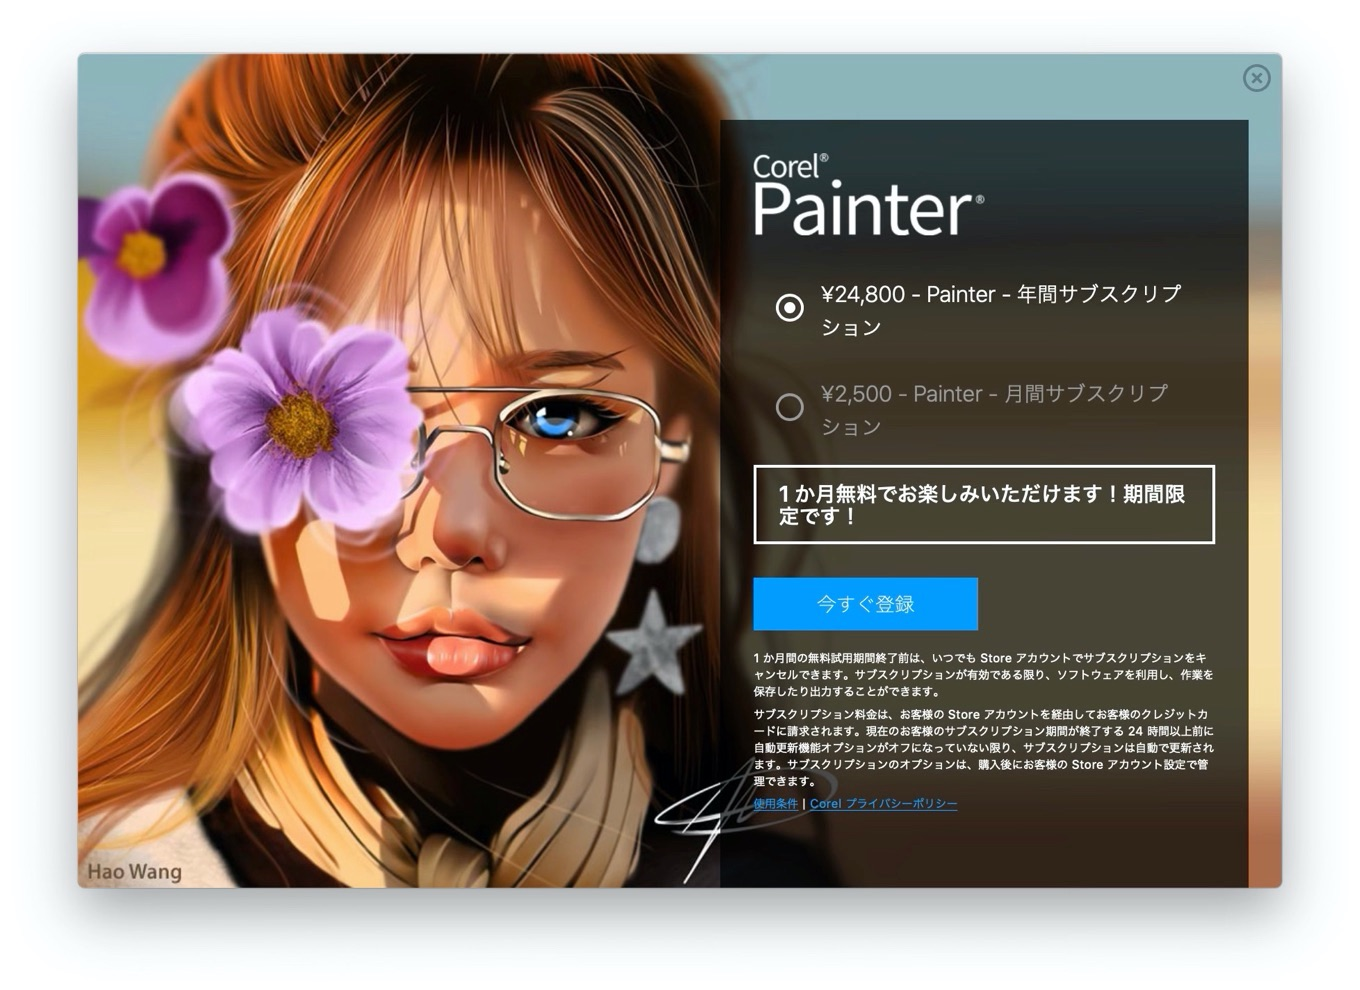 Corel Painter subscription